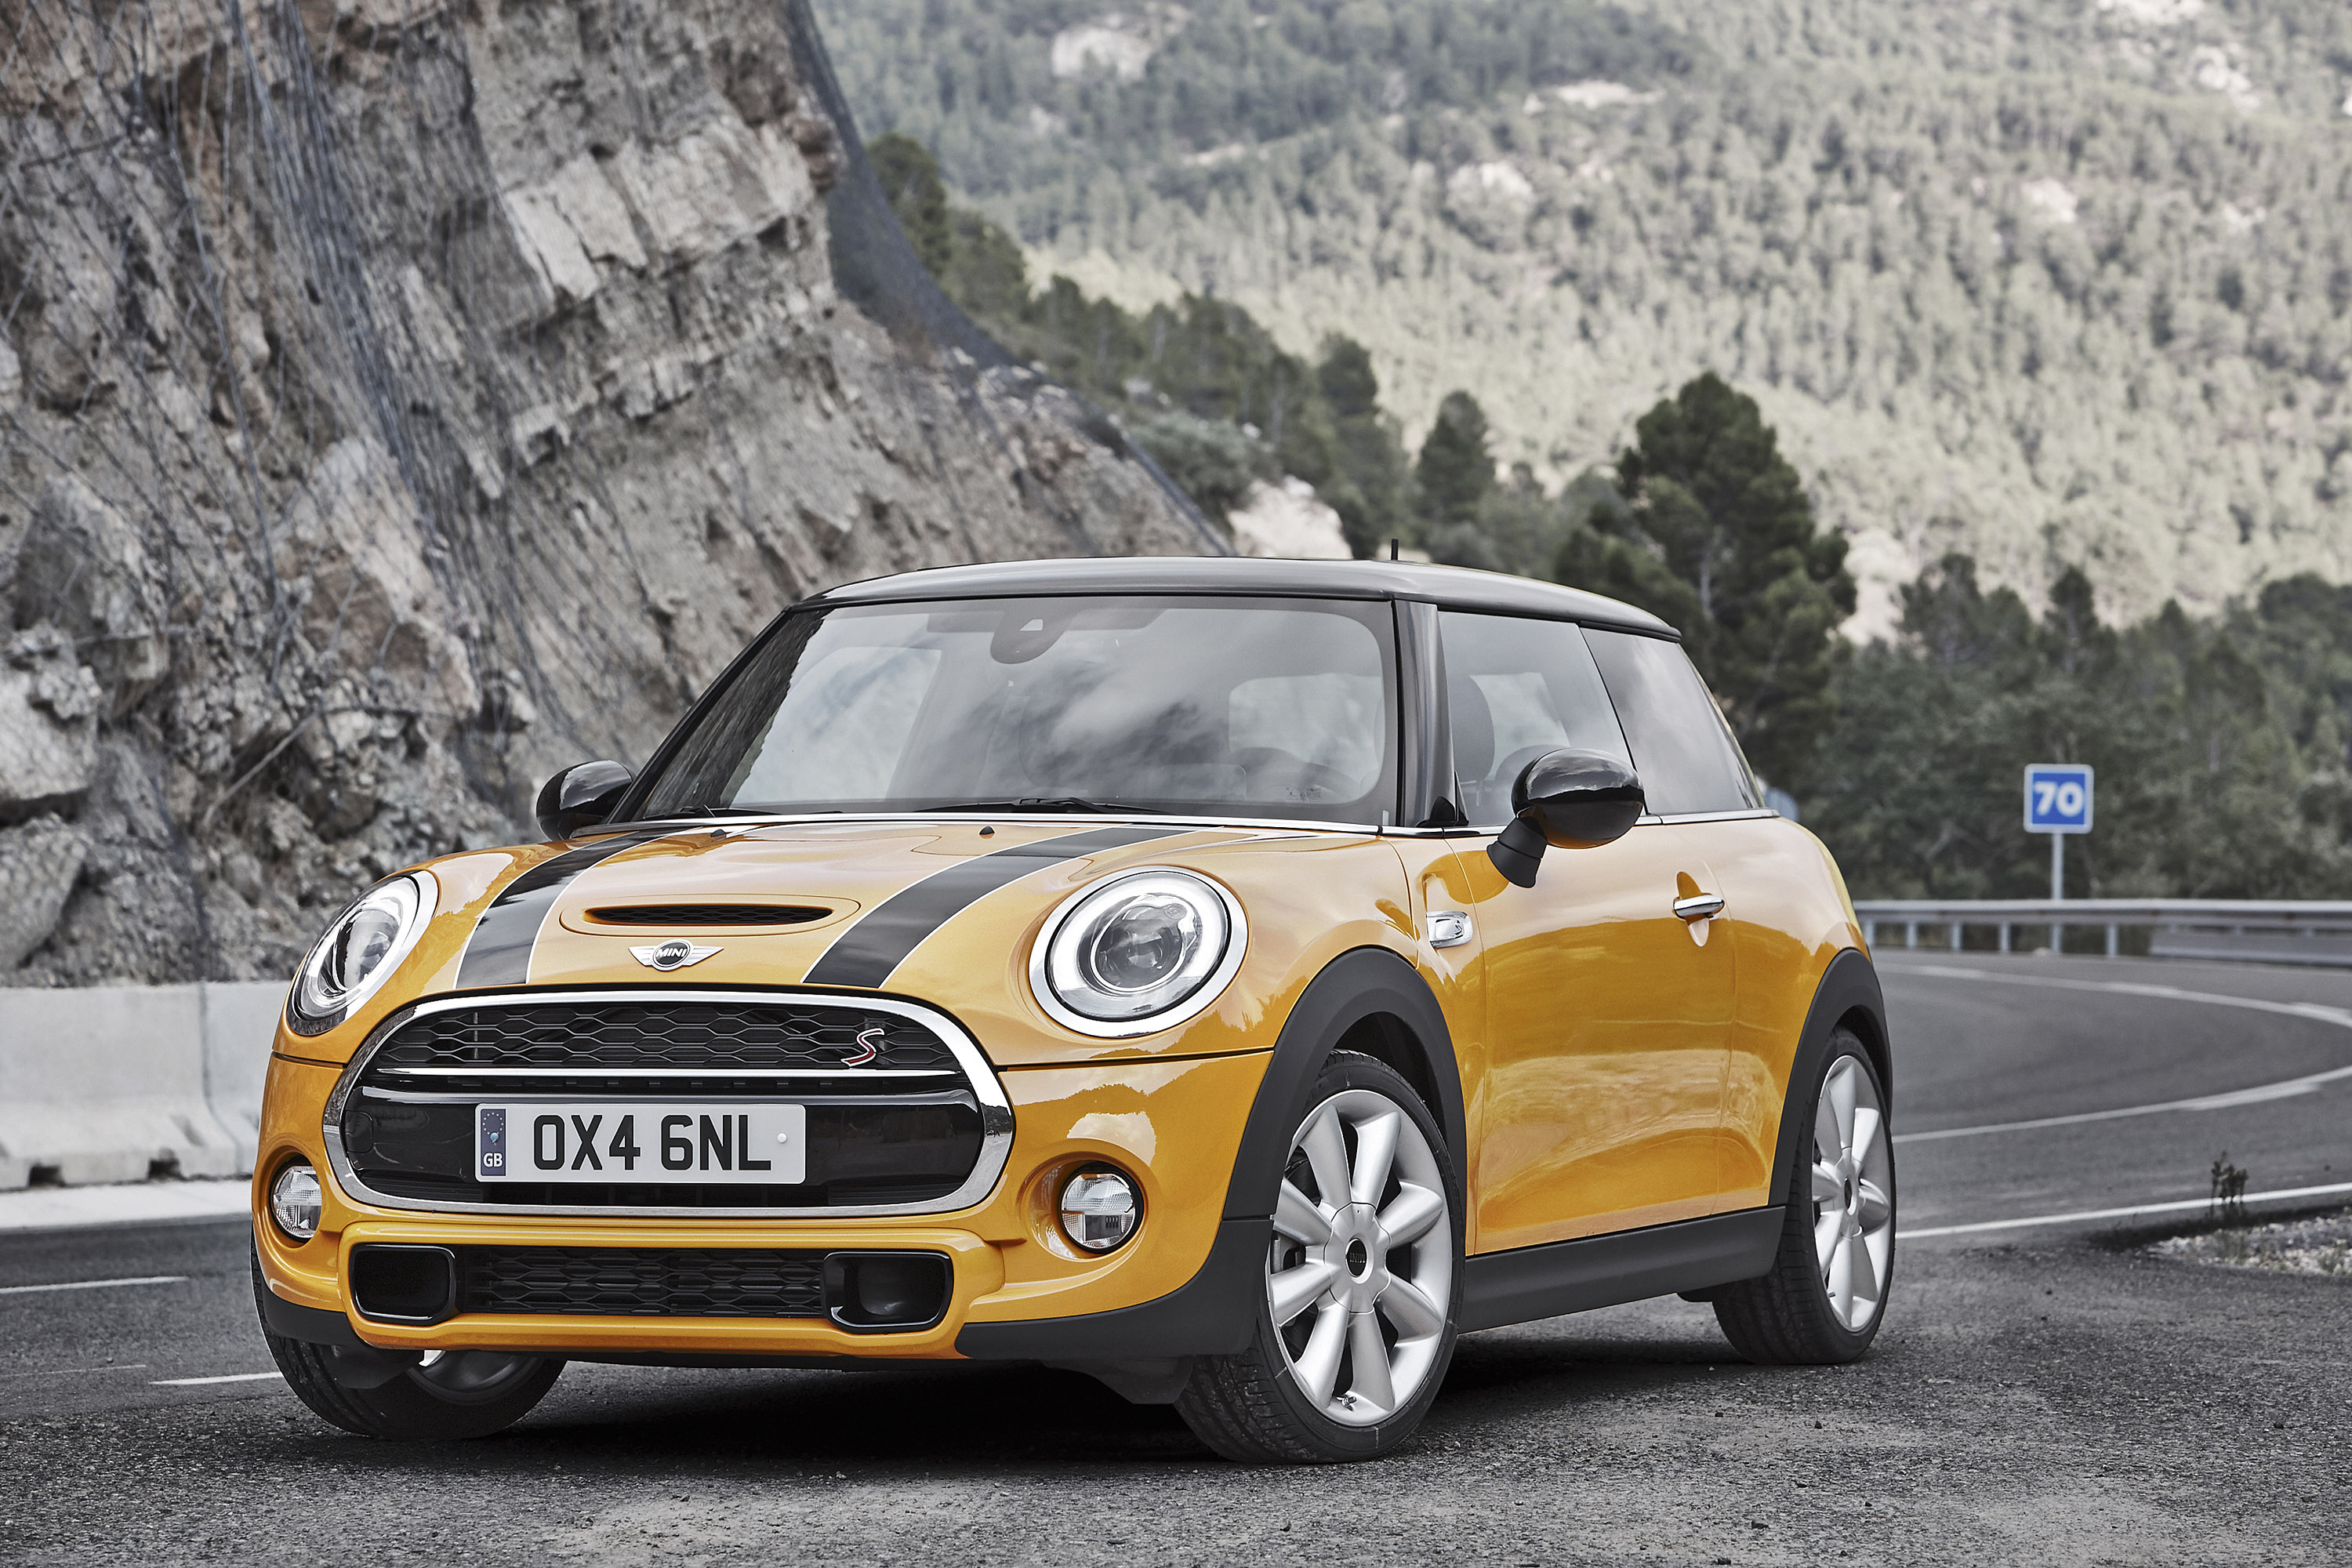 mini reveals 2015 cooper and cooper s models. Black Bedroom Furniture Sets. Home Design Ideas